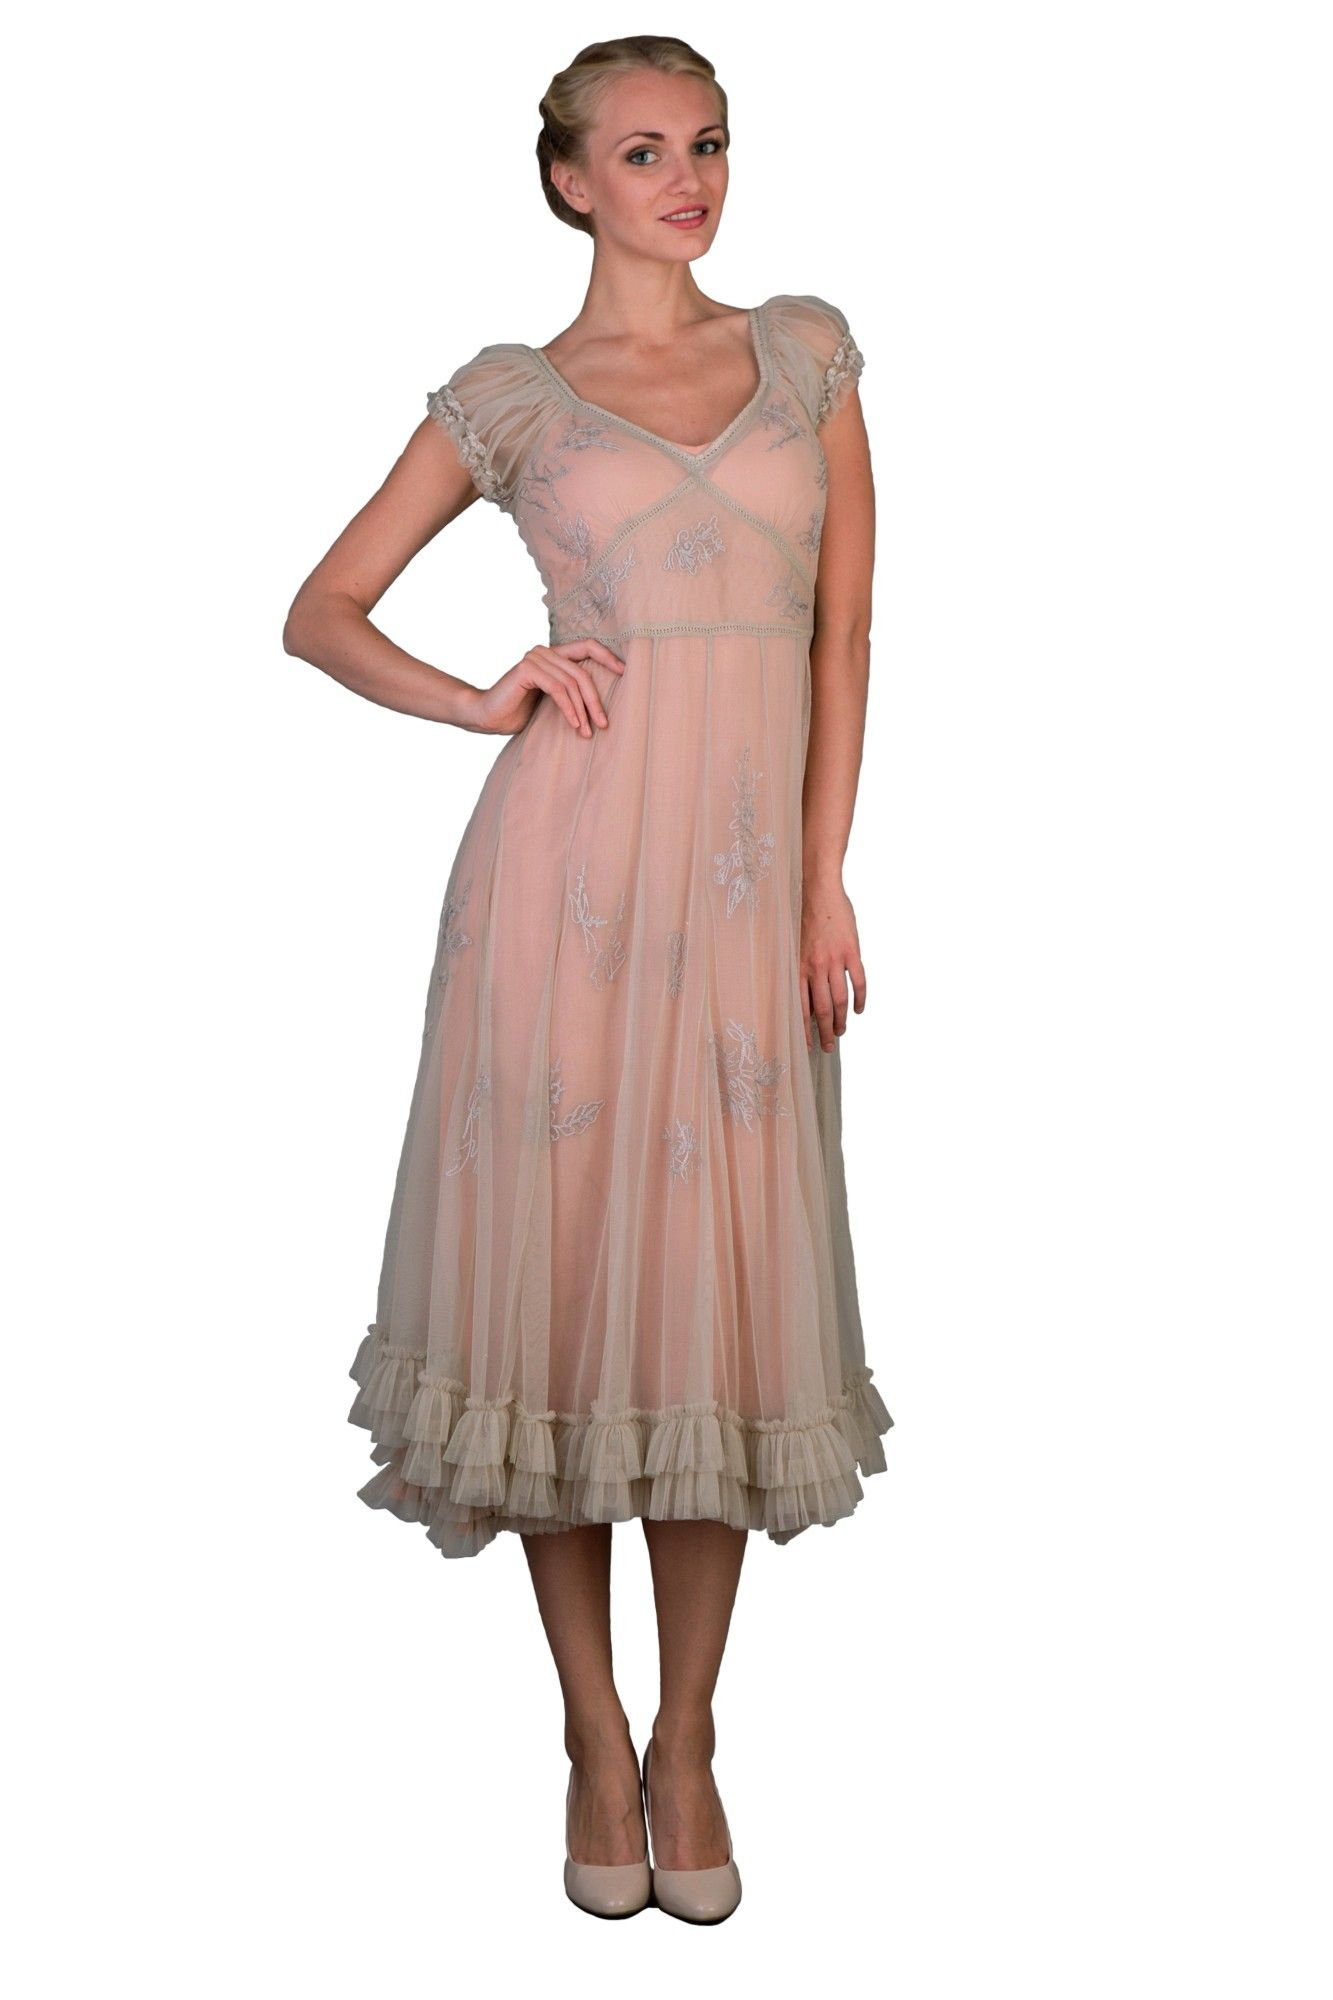 1920s Day Dresses, Tea Dresses, Mature Dresses with Sleeves